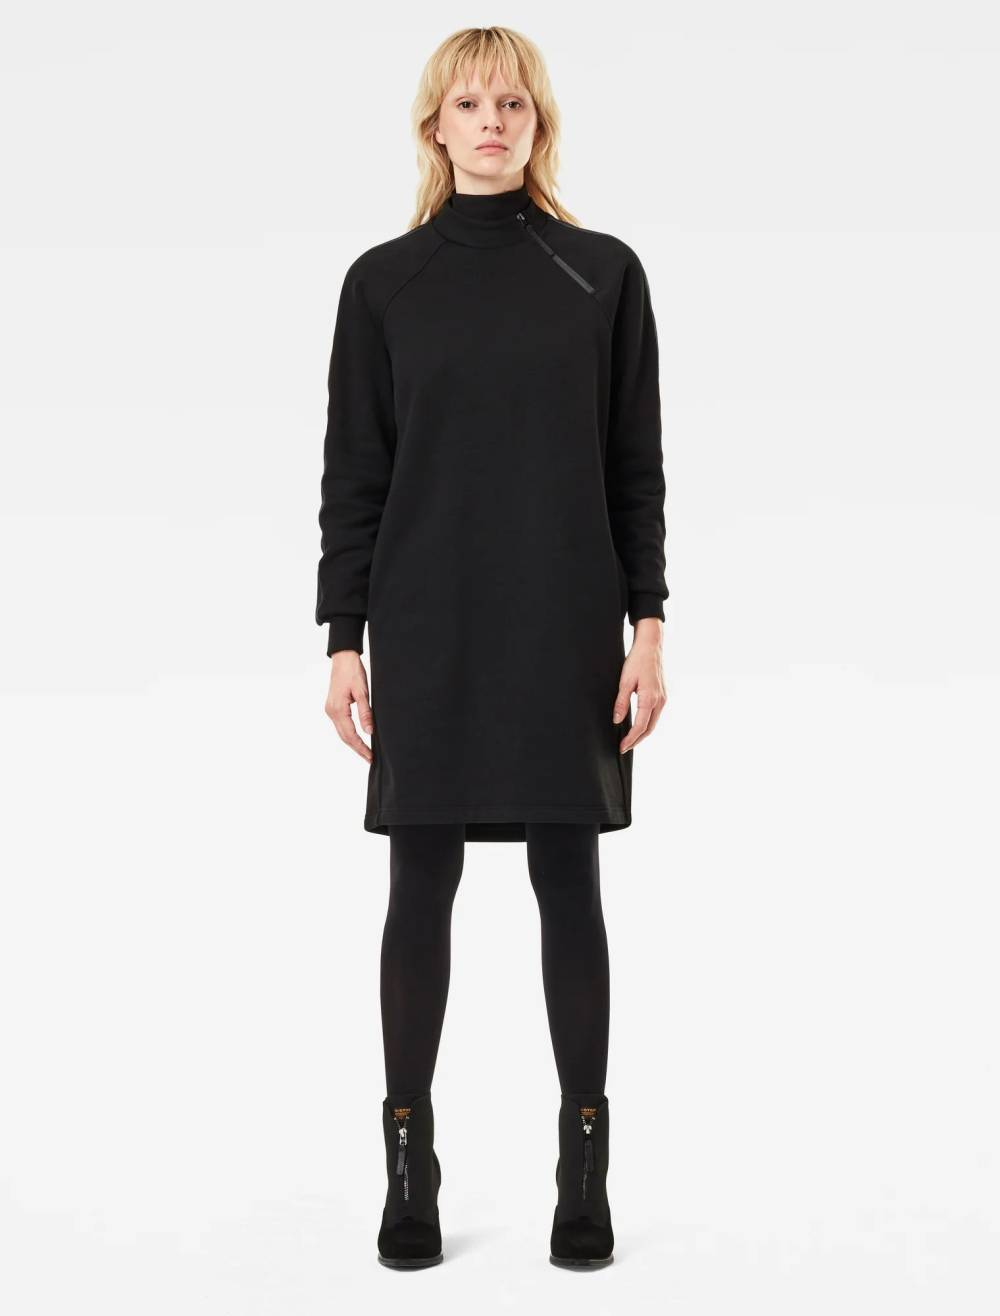 g star raw cheap turtleneck dress